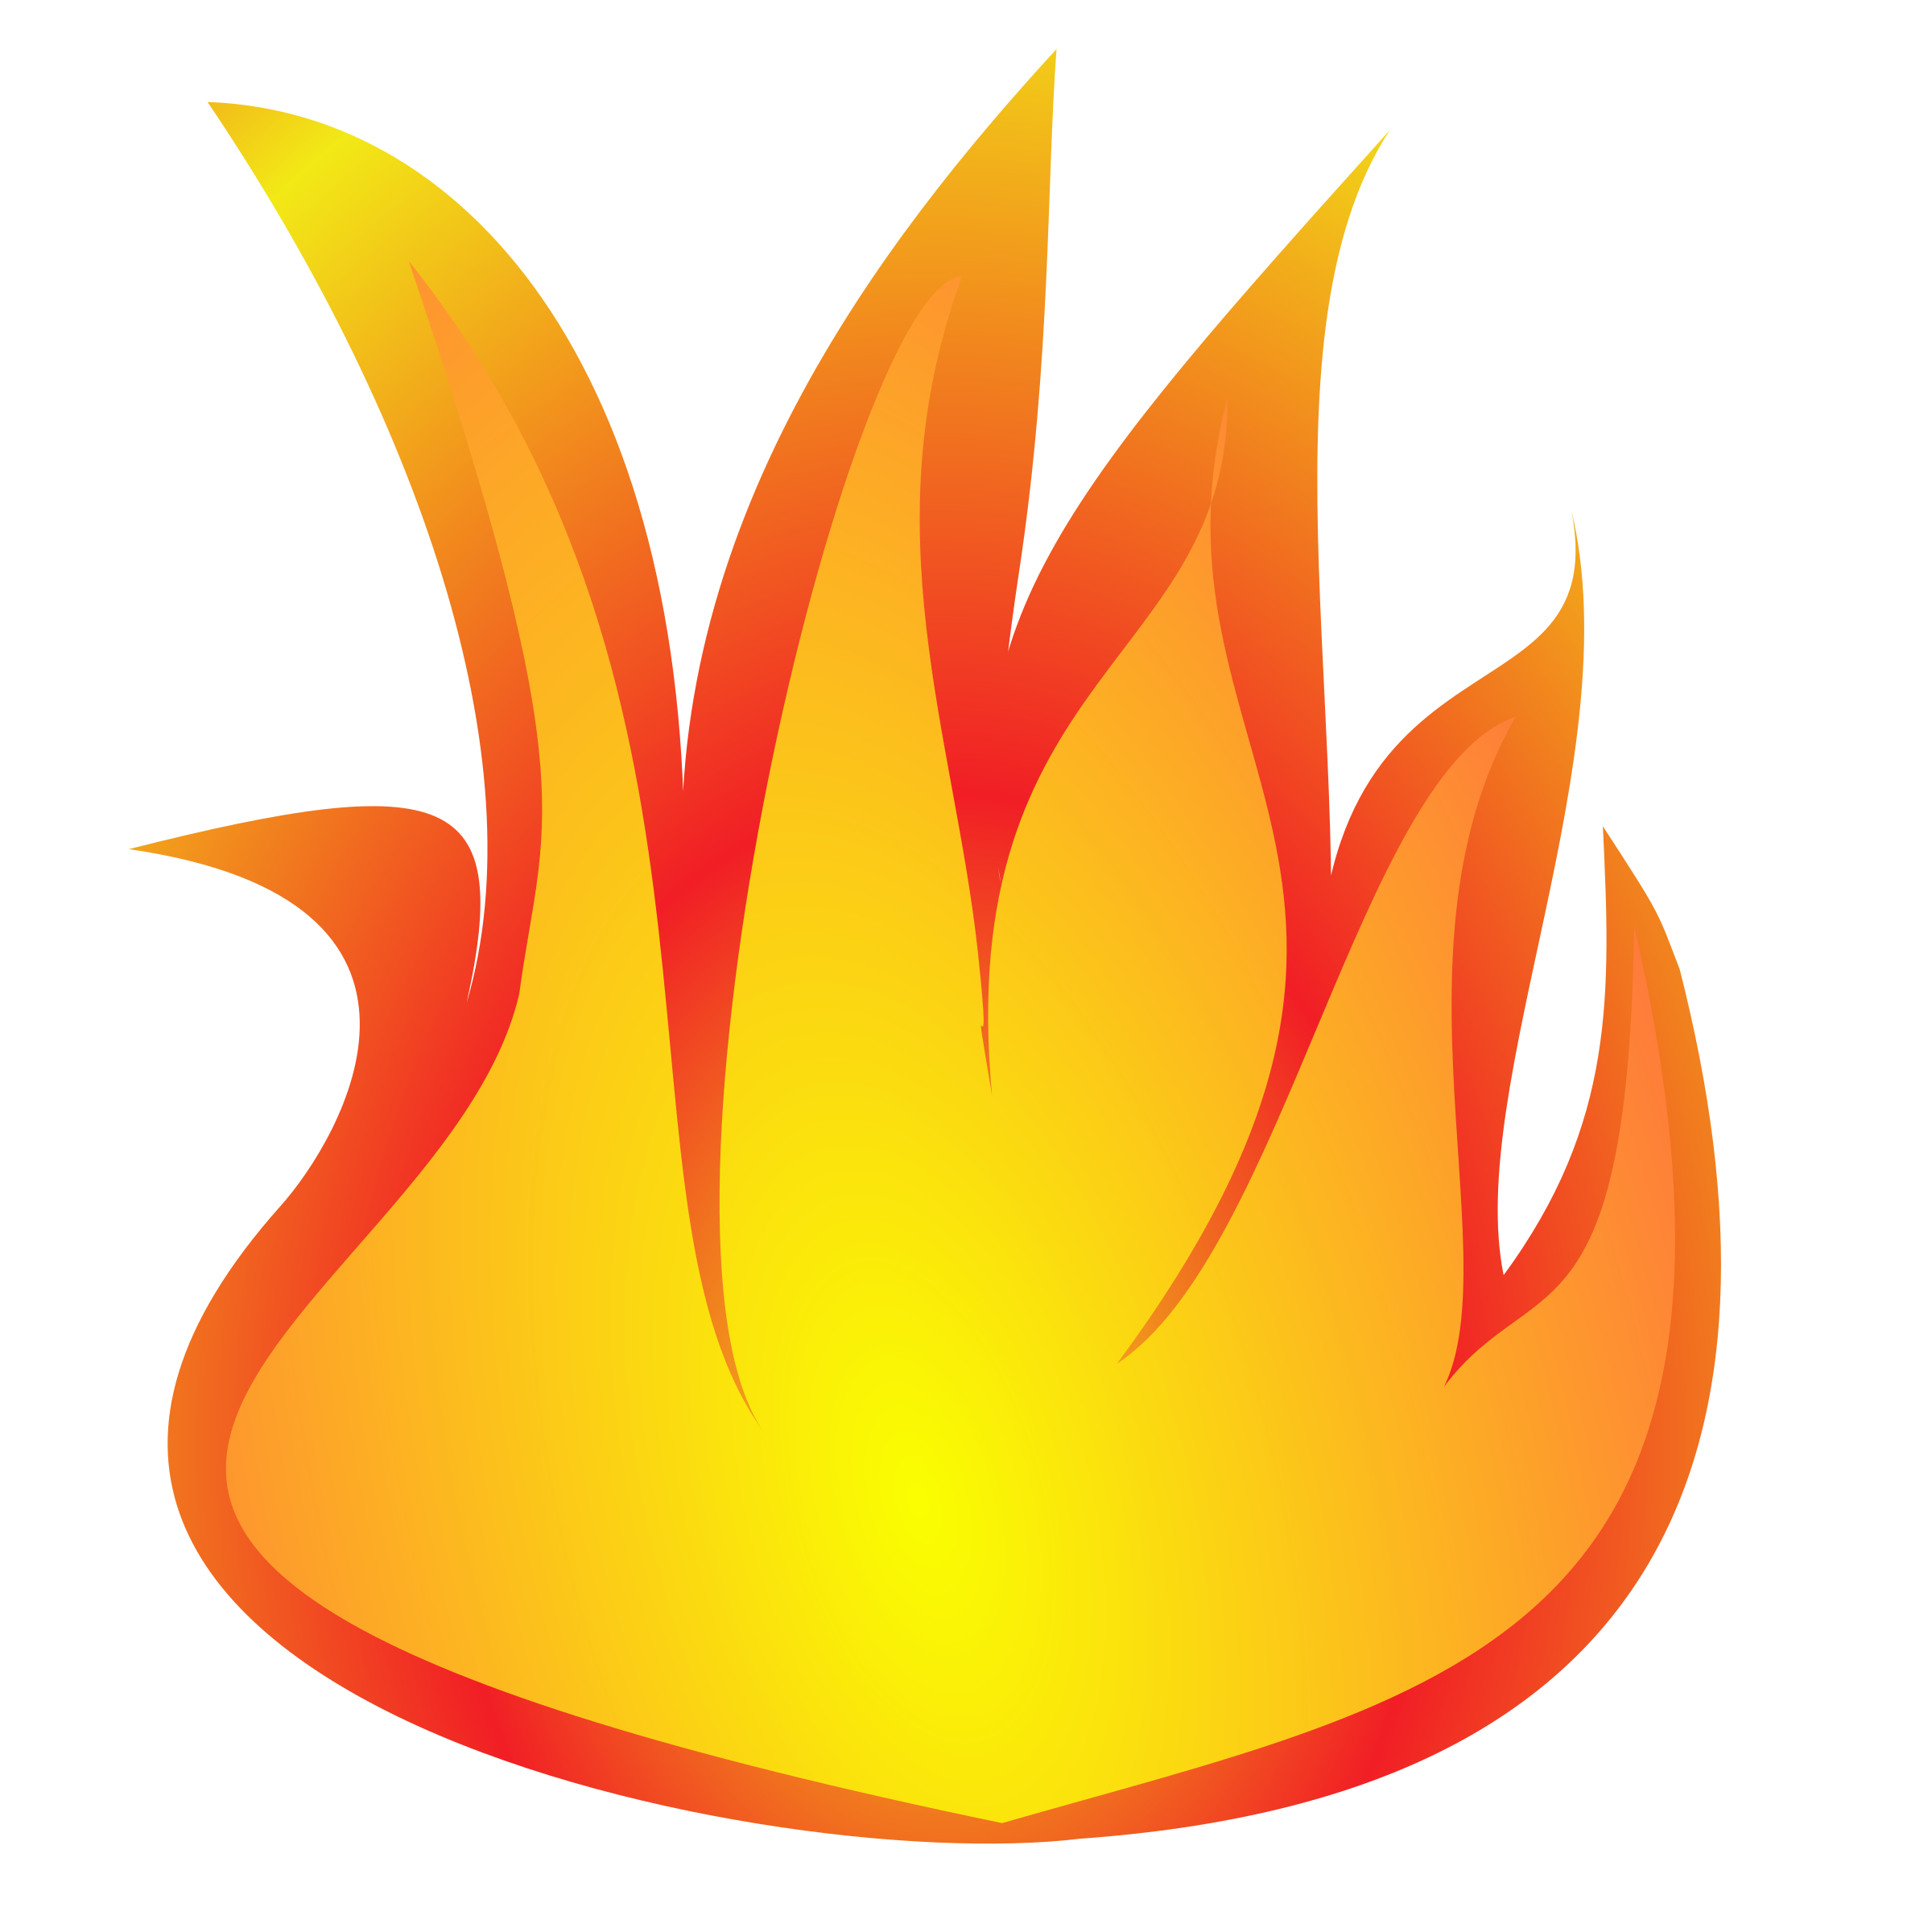 Fire flame clipart